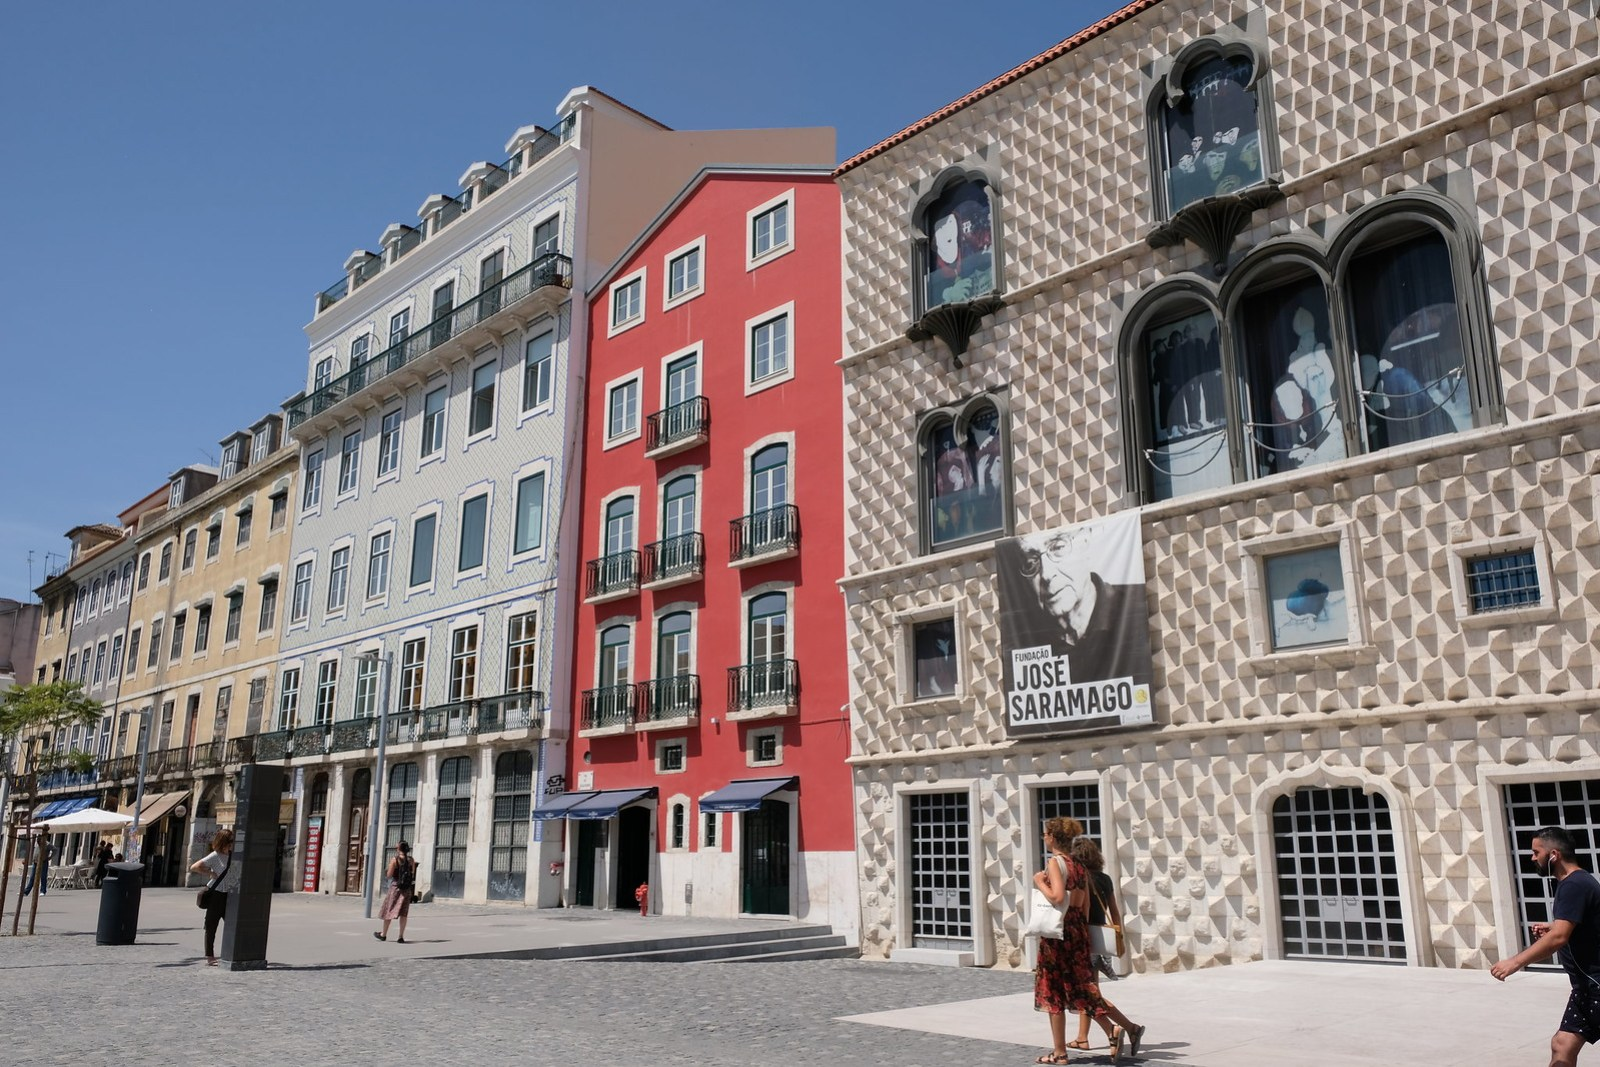 Some of the cool buildings on the way out of Alfama